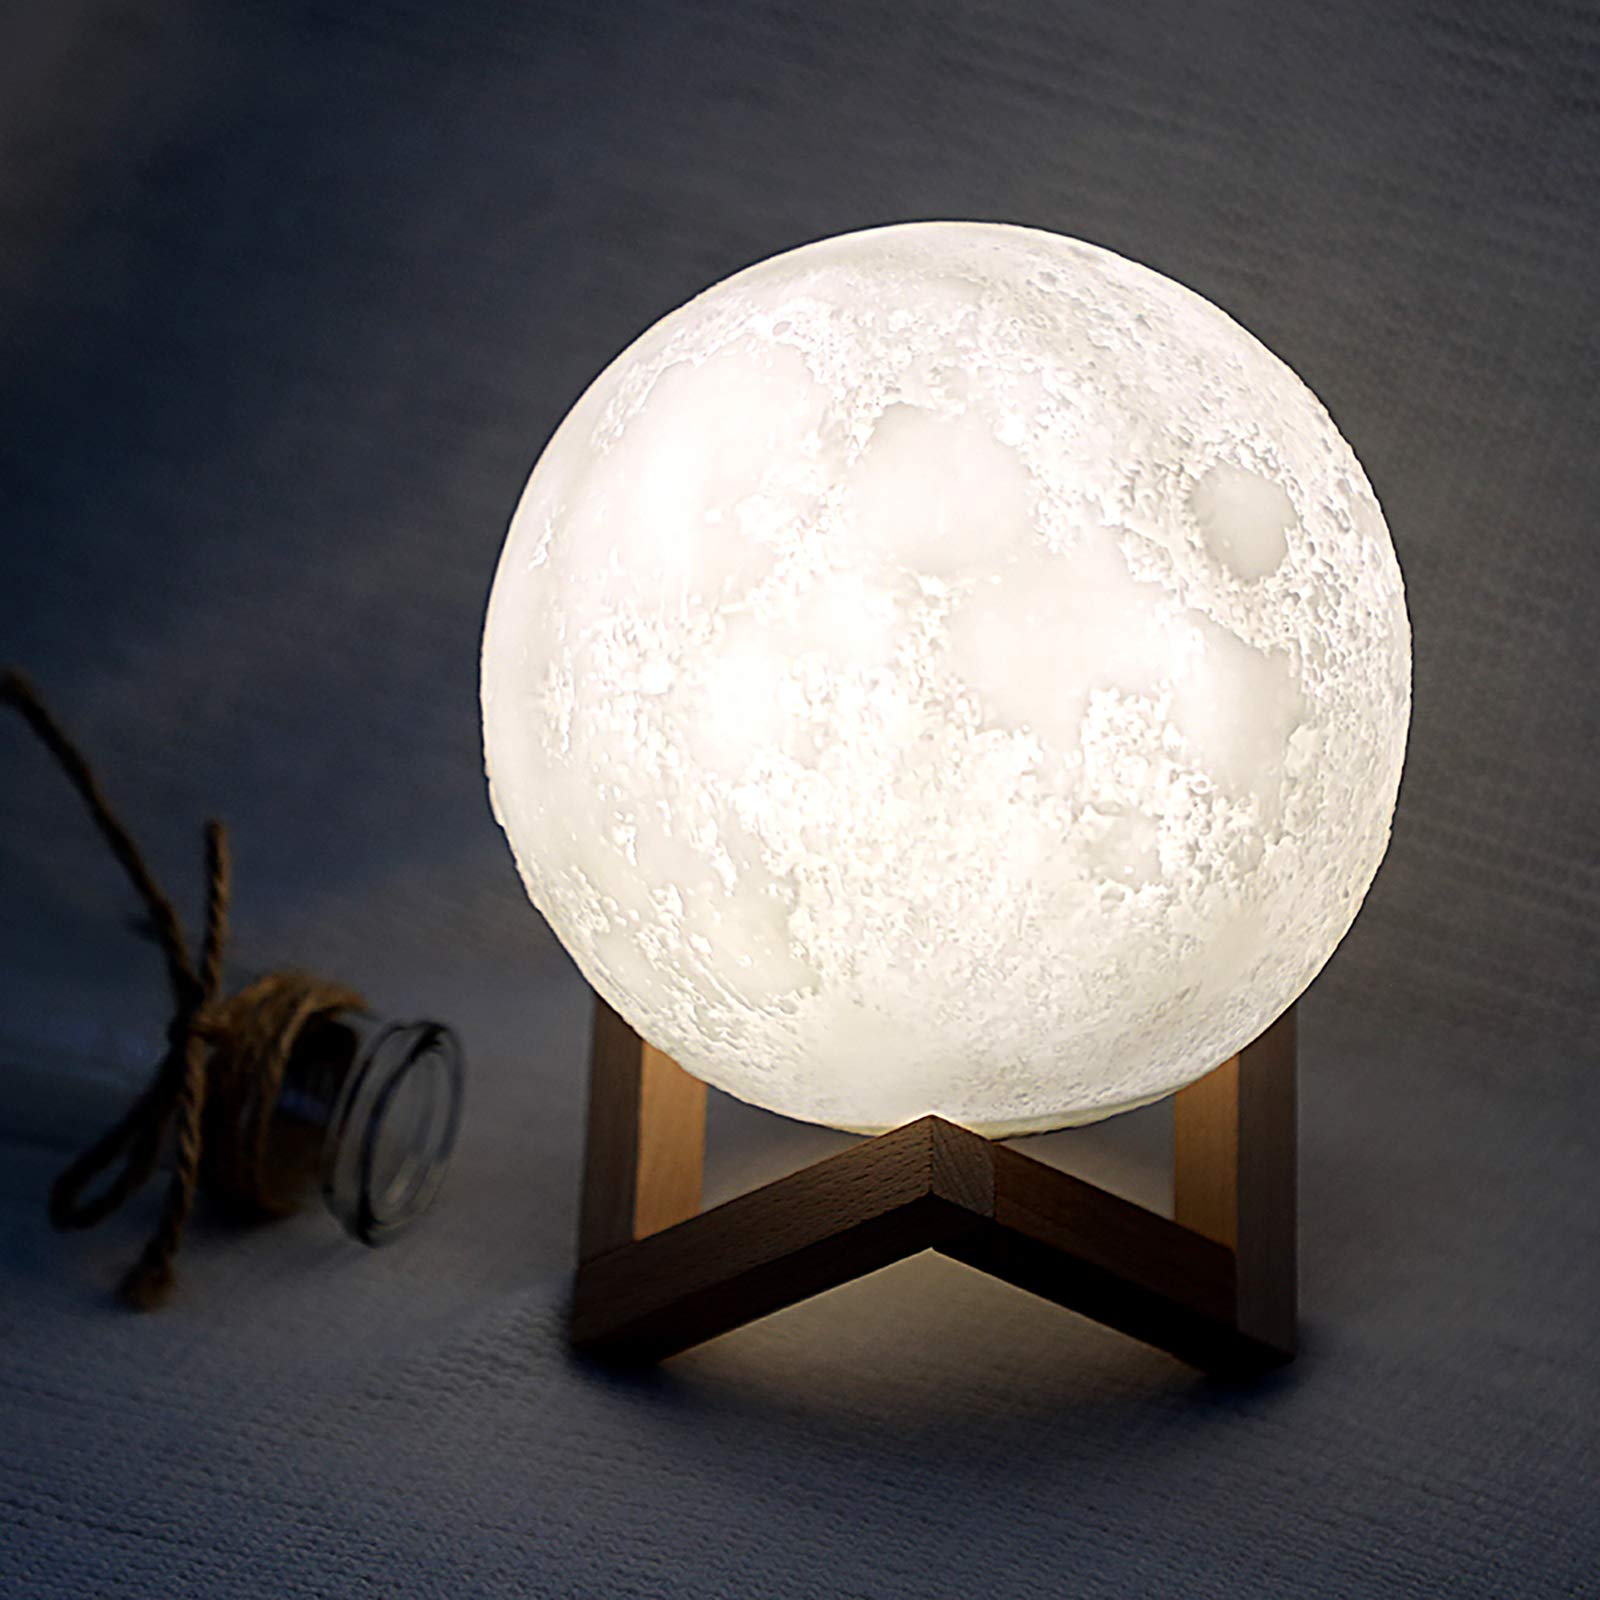 Moon-Shaped White Noise Machine, Also a Moon lamp, with Bluetooth, 10 Soothing Music for Sleep Therapy, Gorgeous Decor and Small Speaker for Bedroom, a Nice Gift